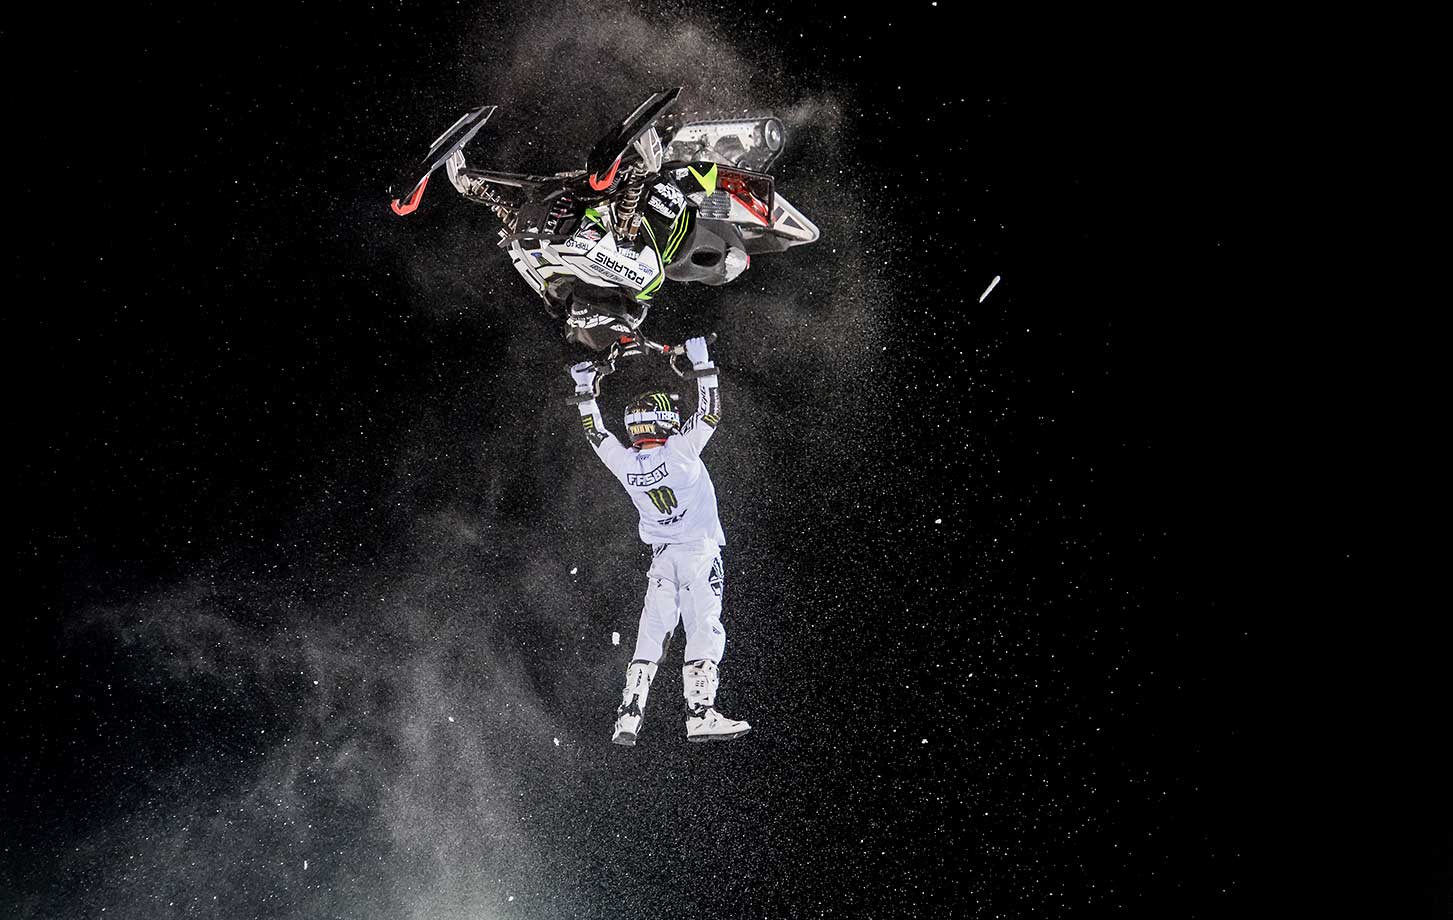 Heath Frisby races during the snowmobile freestyle final at the Winter X Games 2016 Aspen at Buttermilk Mountain. Frisby took home the bronze medal in the event.